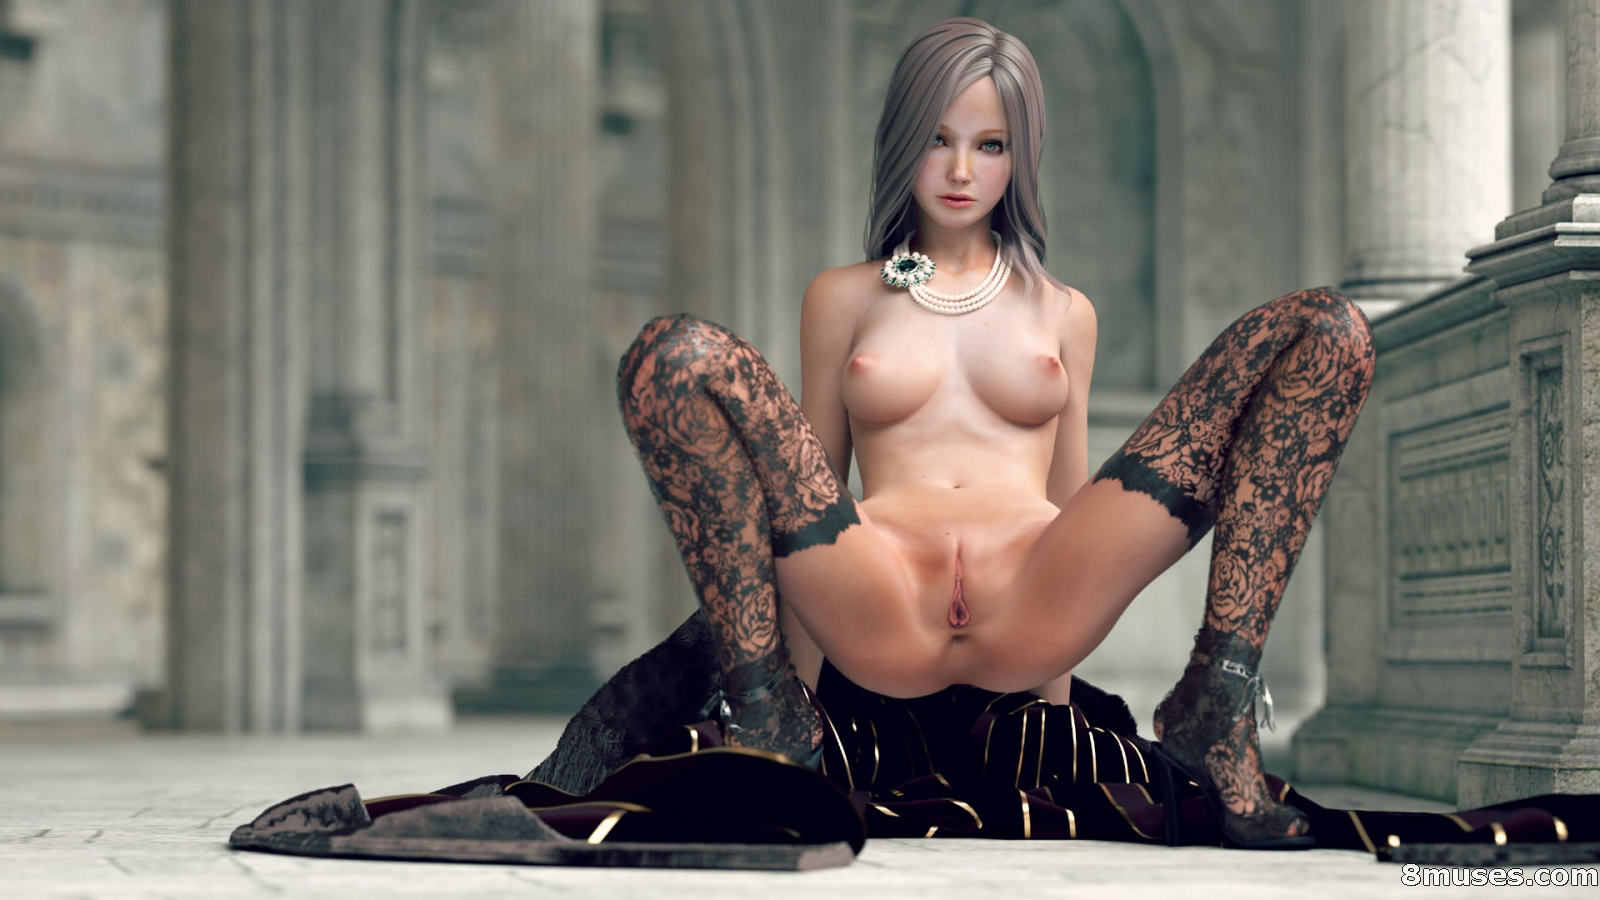 Fantasy 3dgirl nude pron video